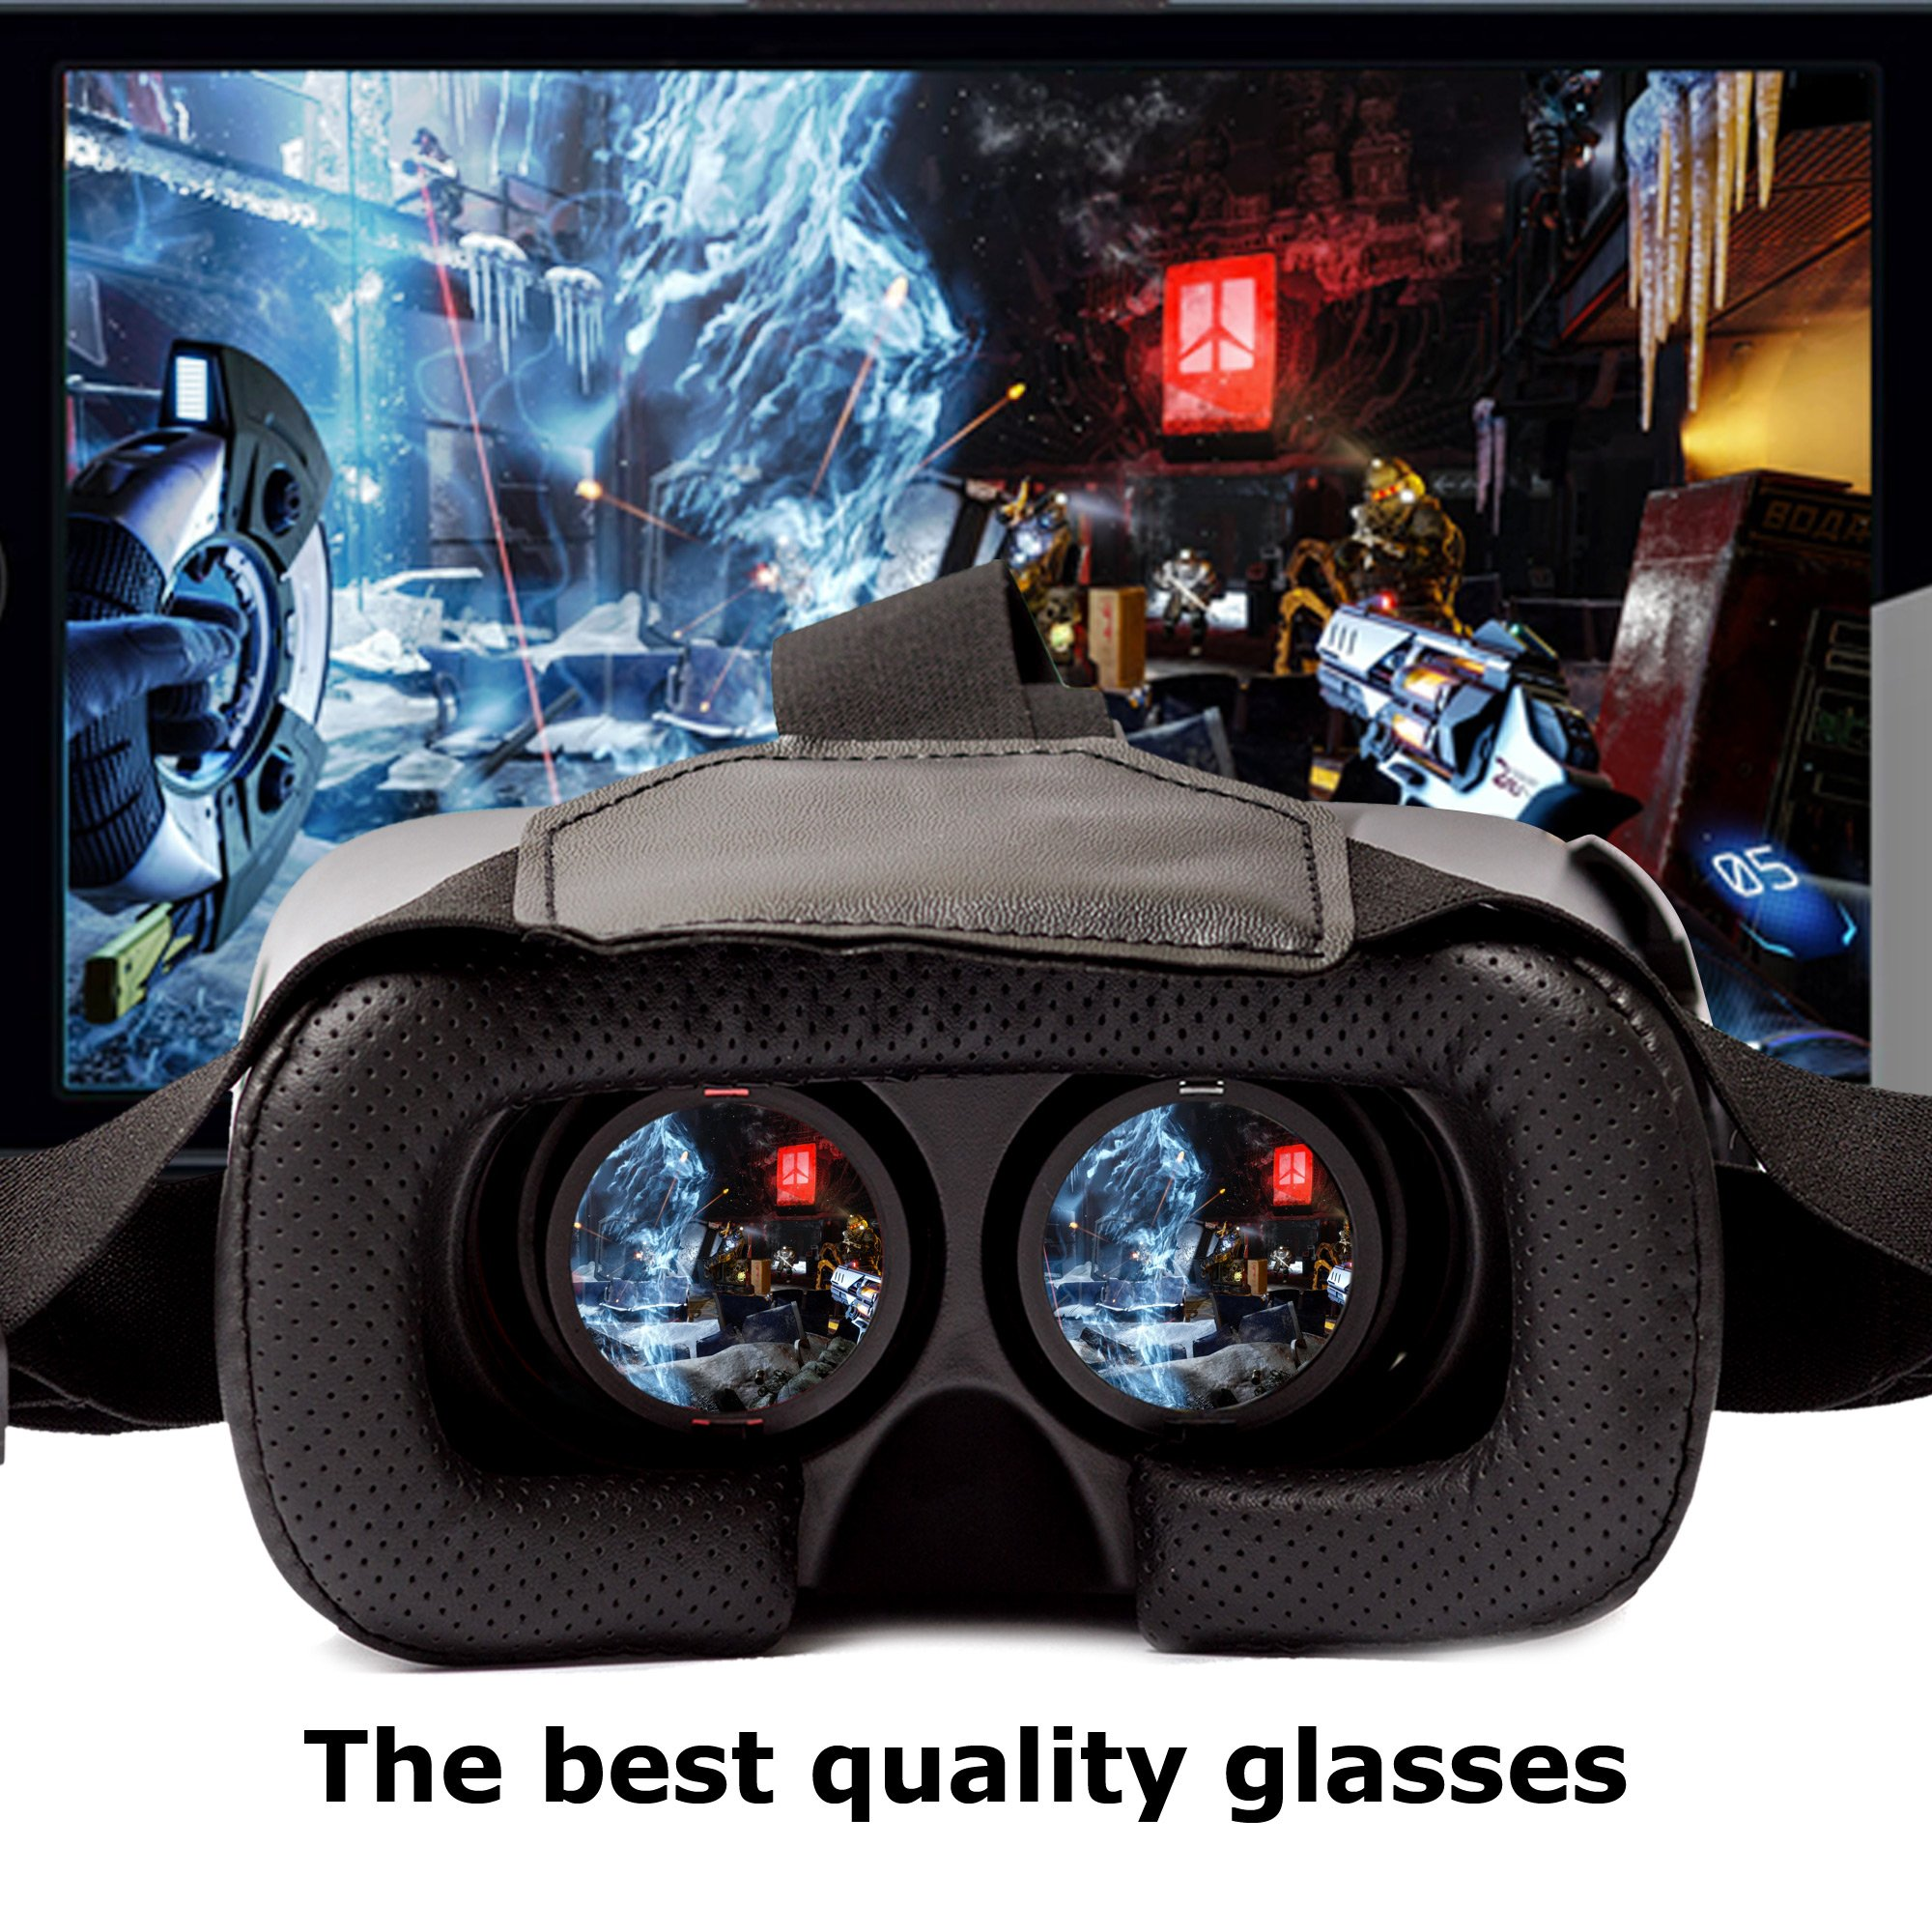 3D Virtual Reality Game Glasses Gaming Headset by Calerix Cardboard Kit Mobile Cinema Helmet with Bluetooth Remote Control and Blue-Ray Compatible with Smartphone iPhone Samsung Android by Calerix (Image #8)